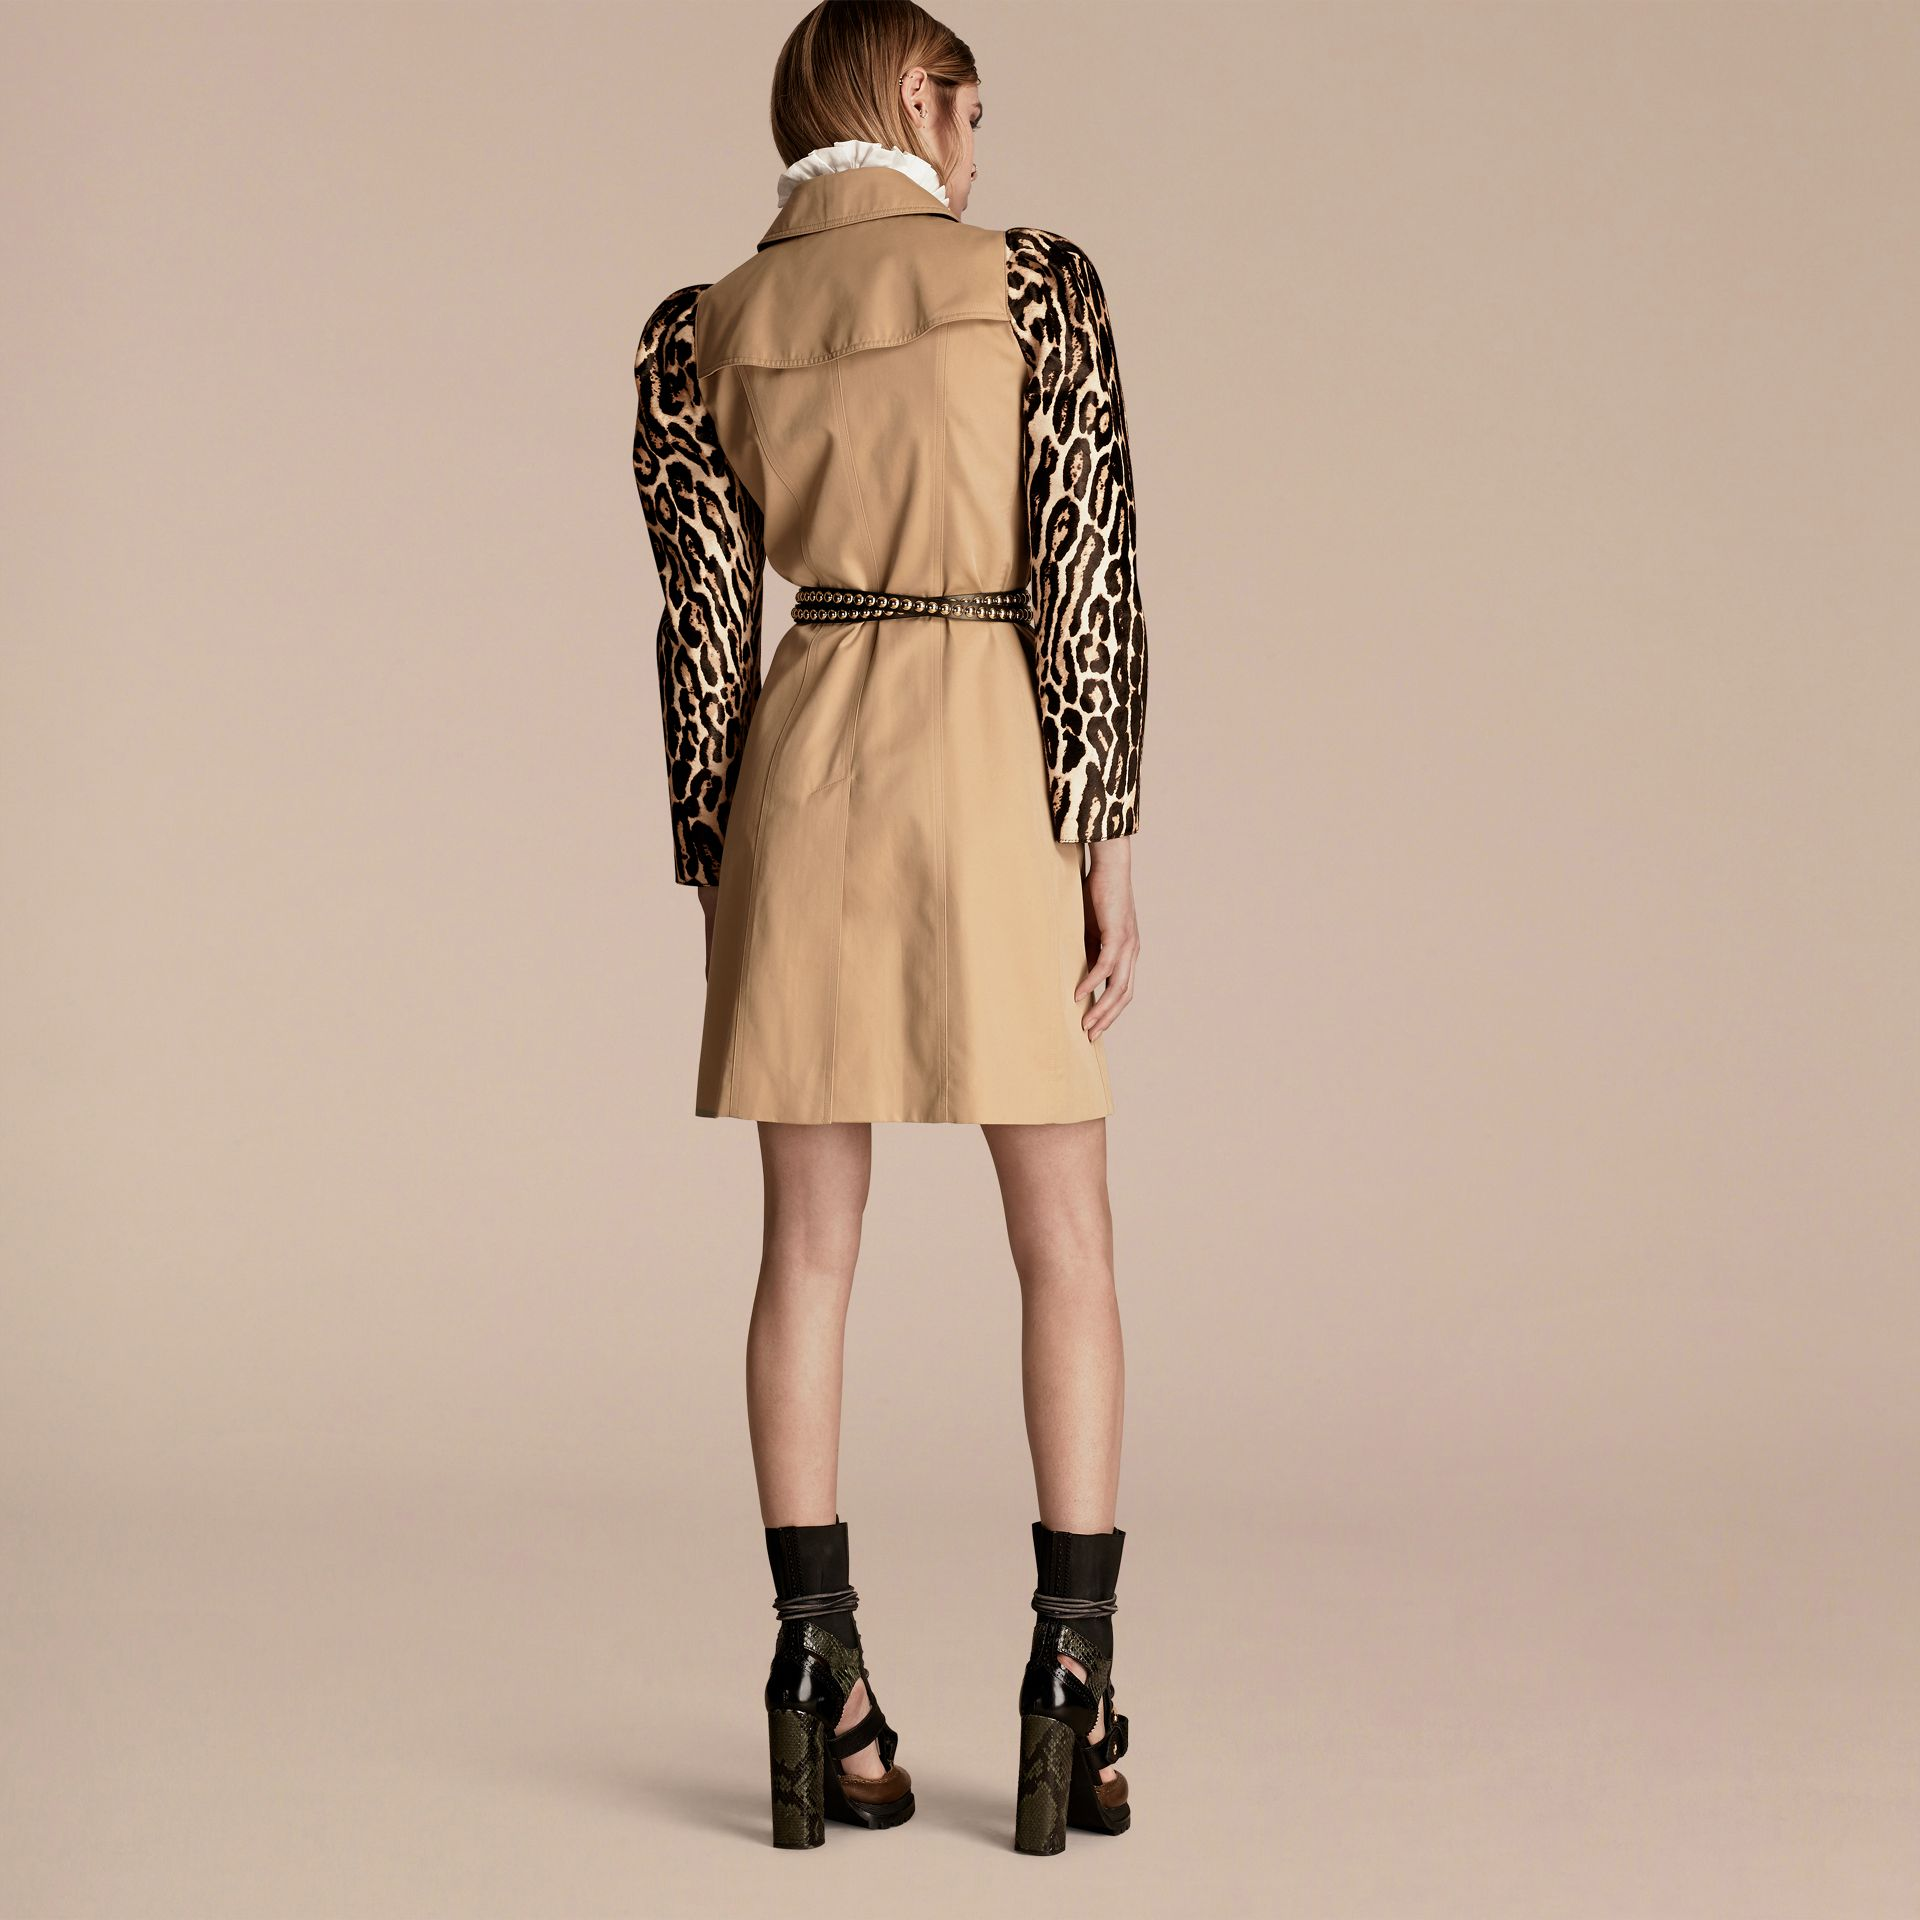 Cotton Gabardine Trench Coat with Leopard-print Sleeves - gallery image 3